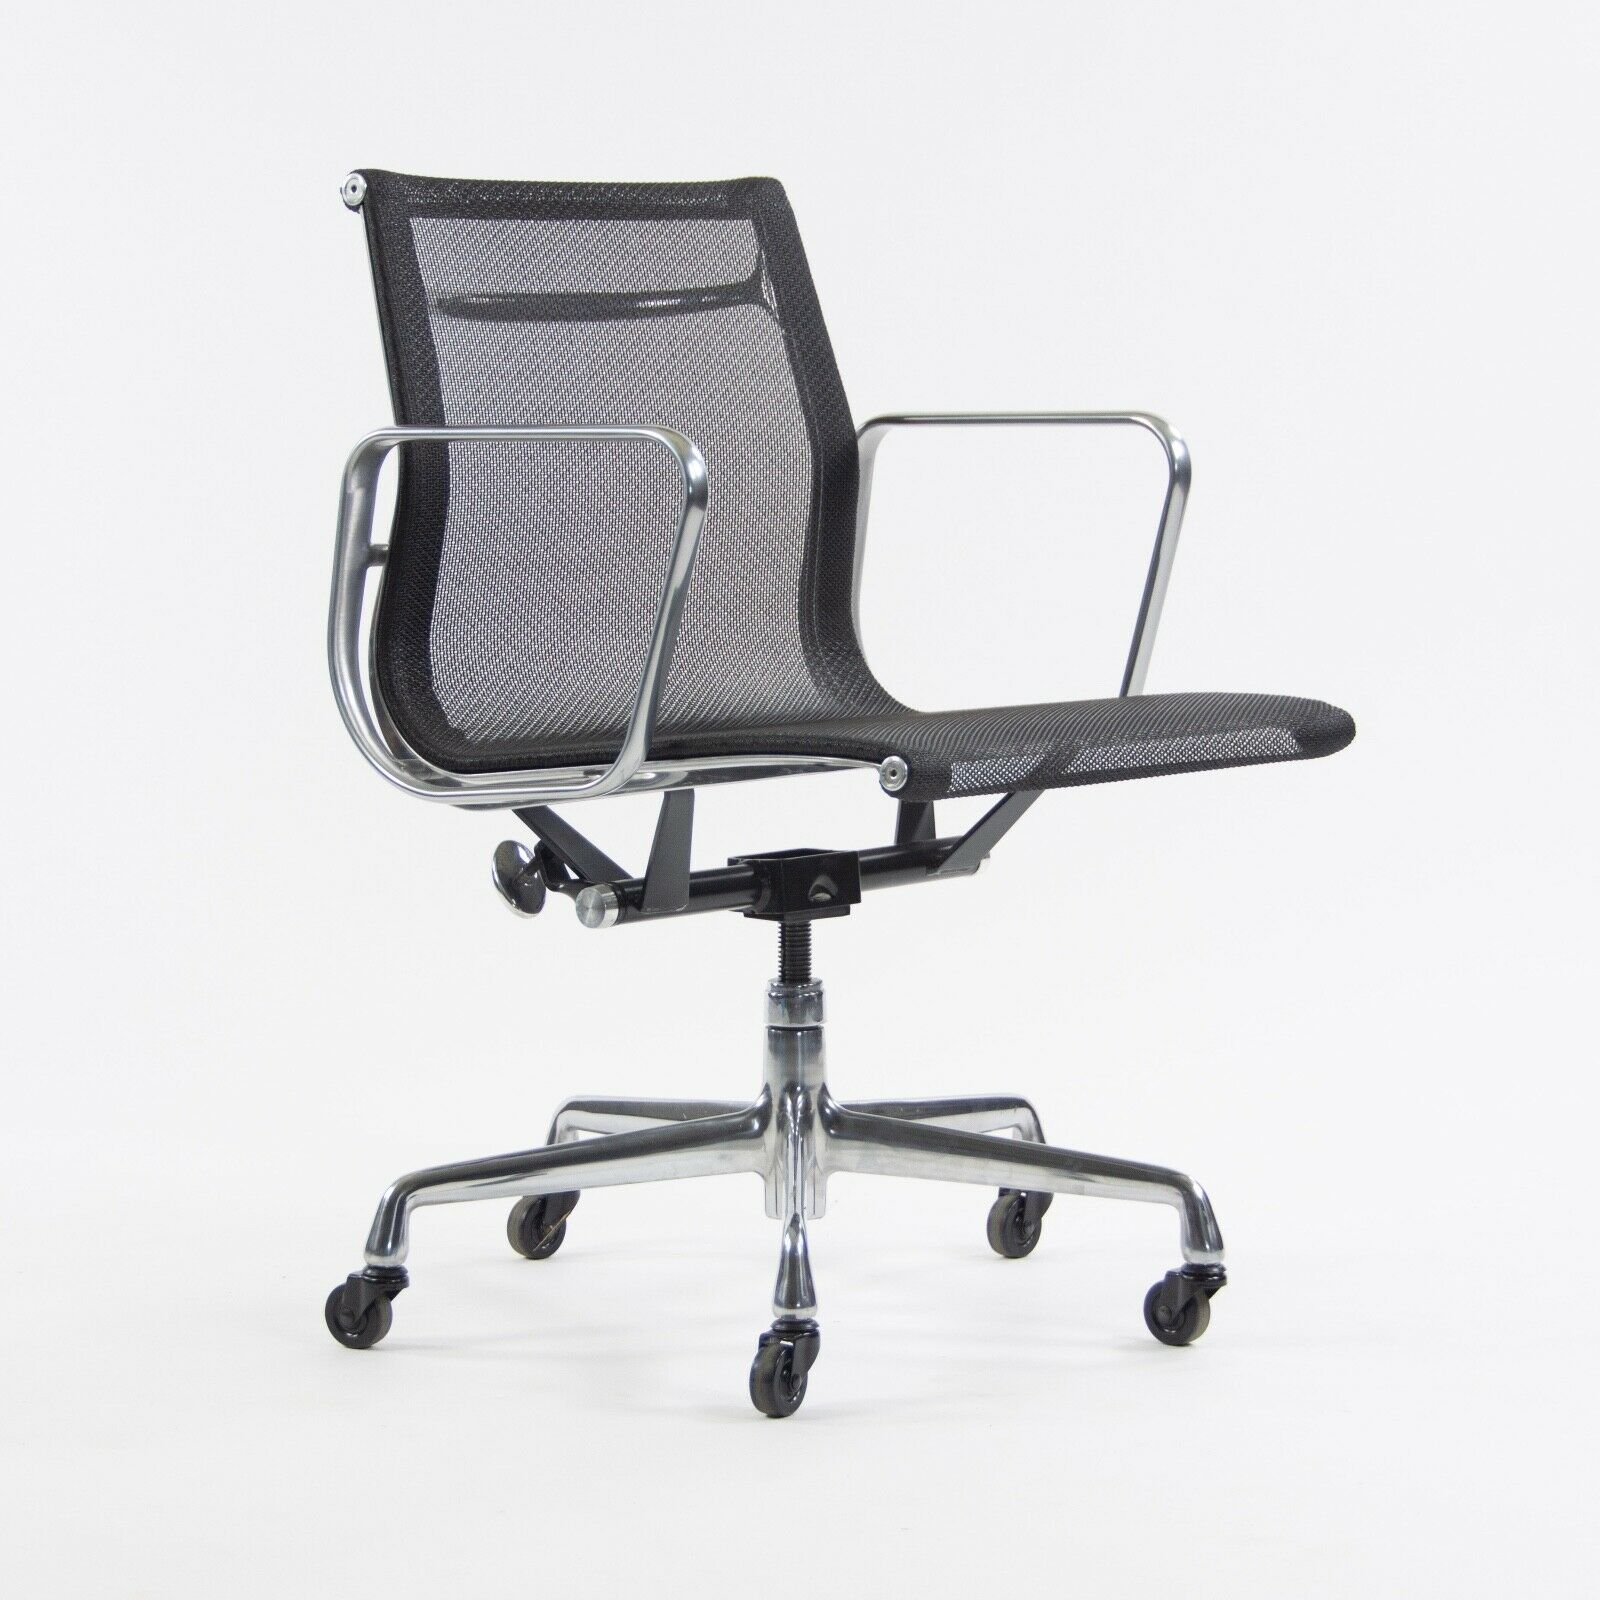 New Old Stock Eames Herman Miller Low